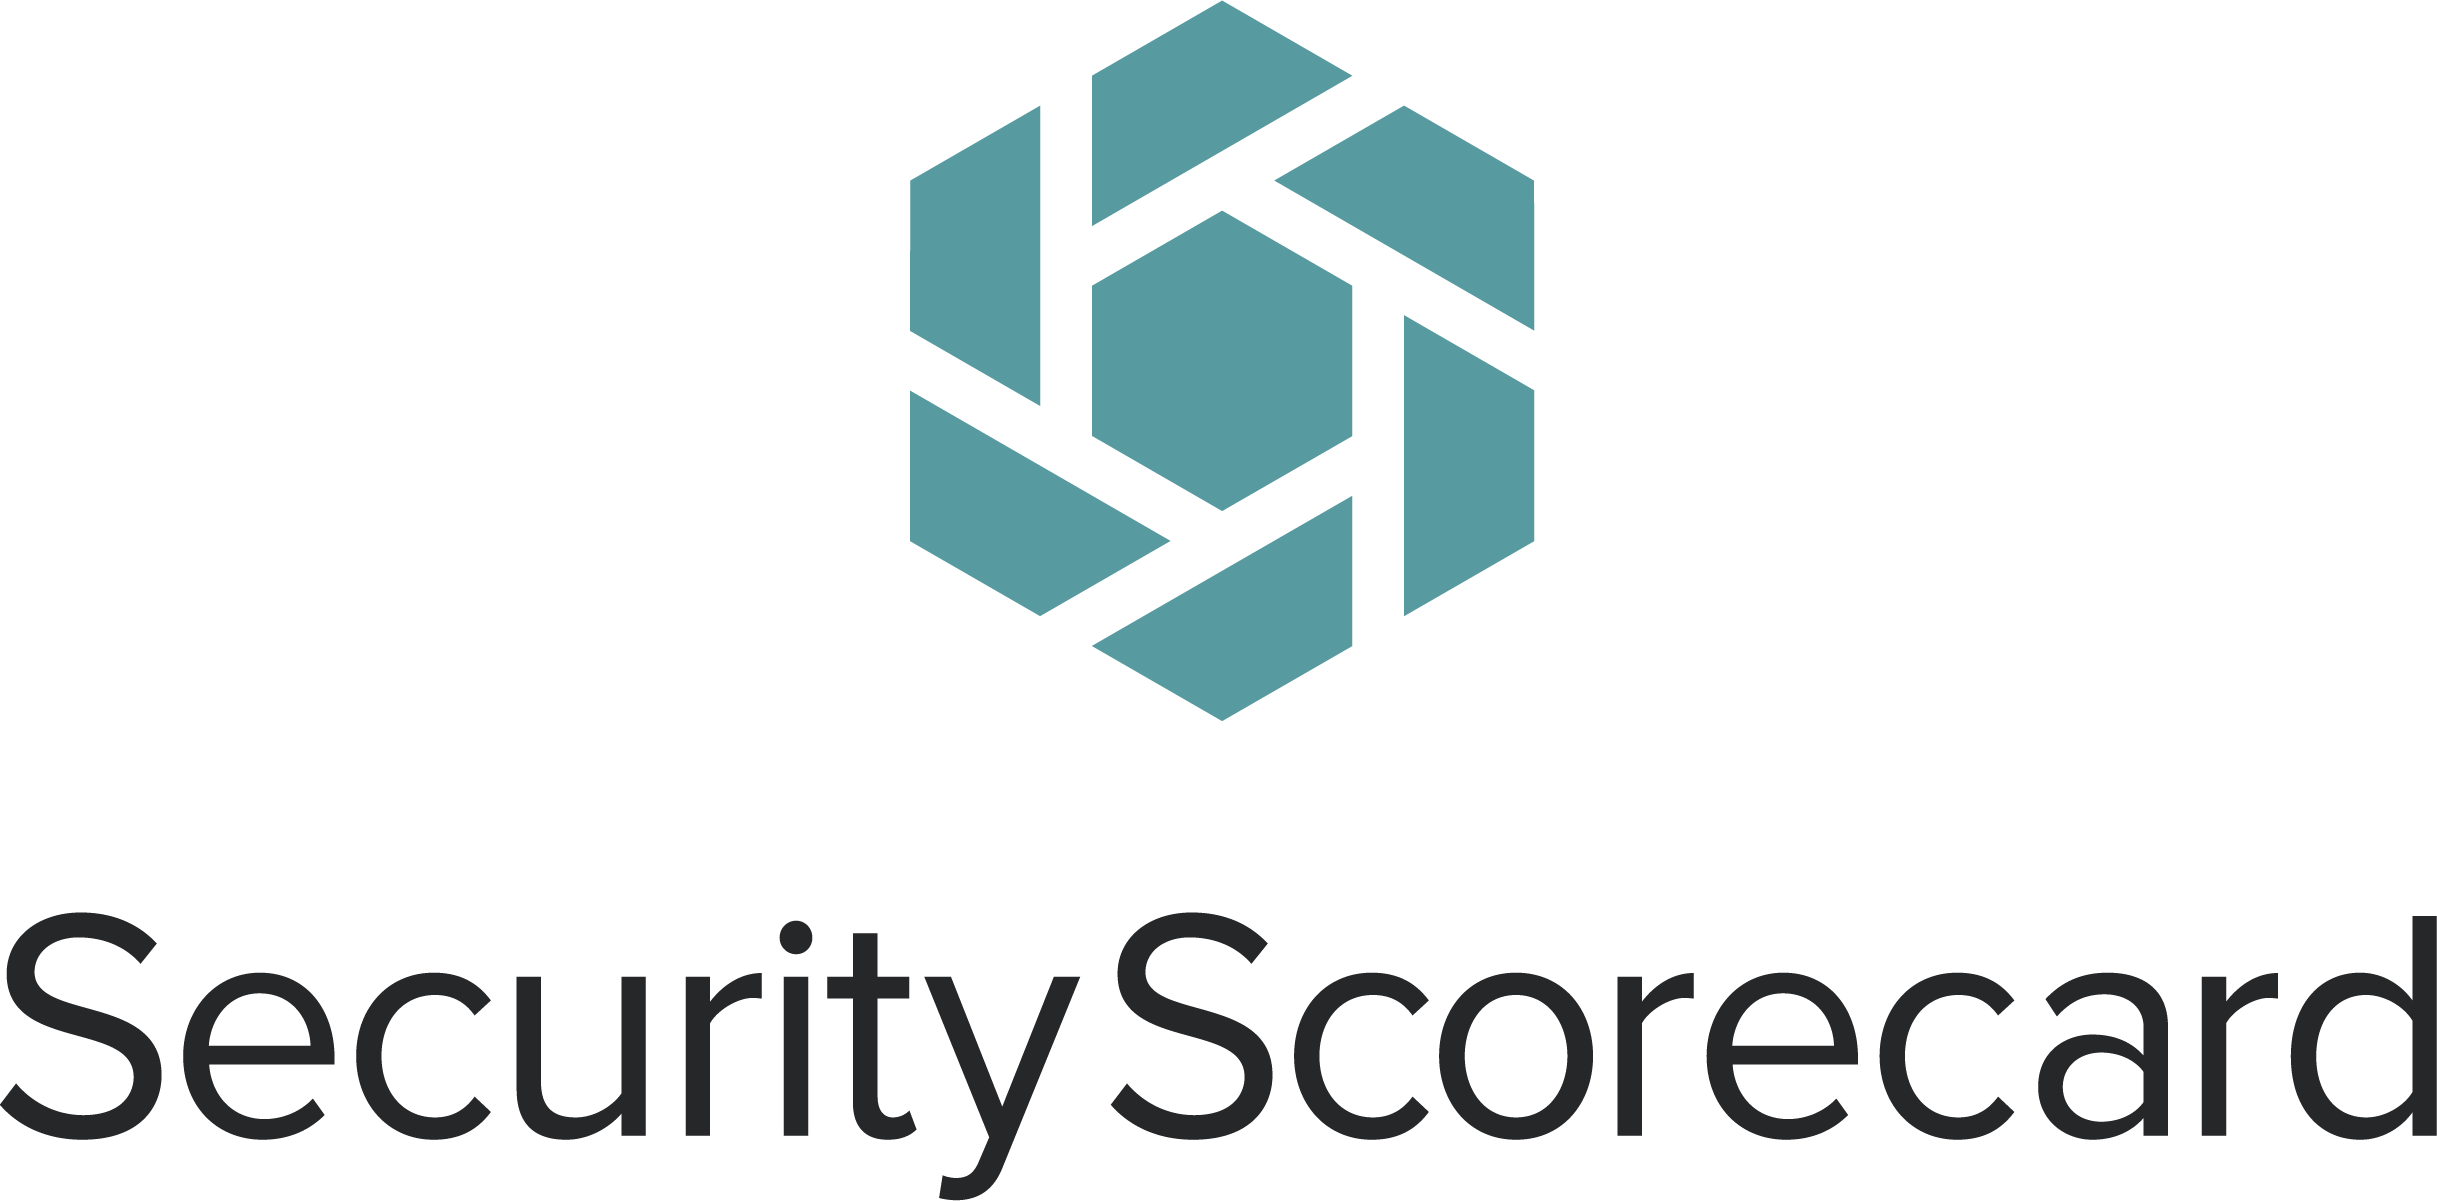 SecurityScorecard_large